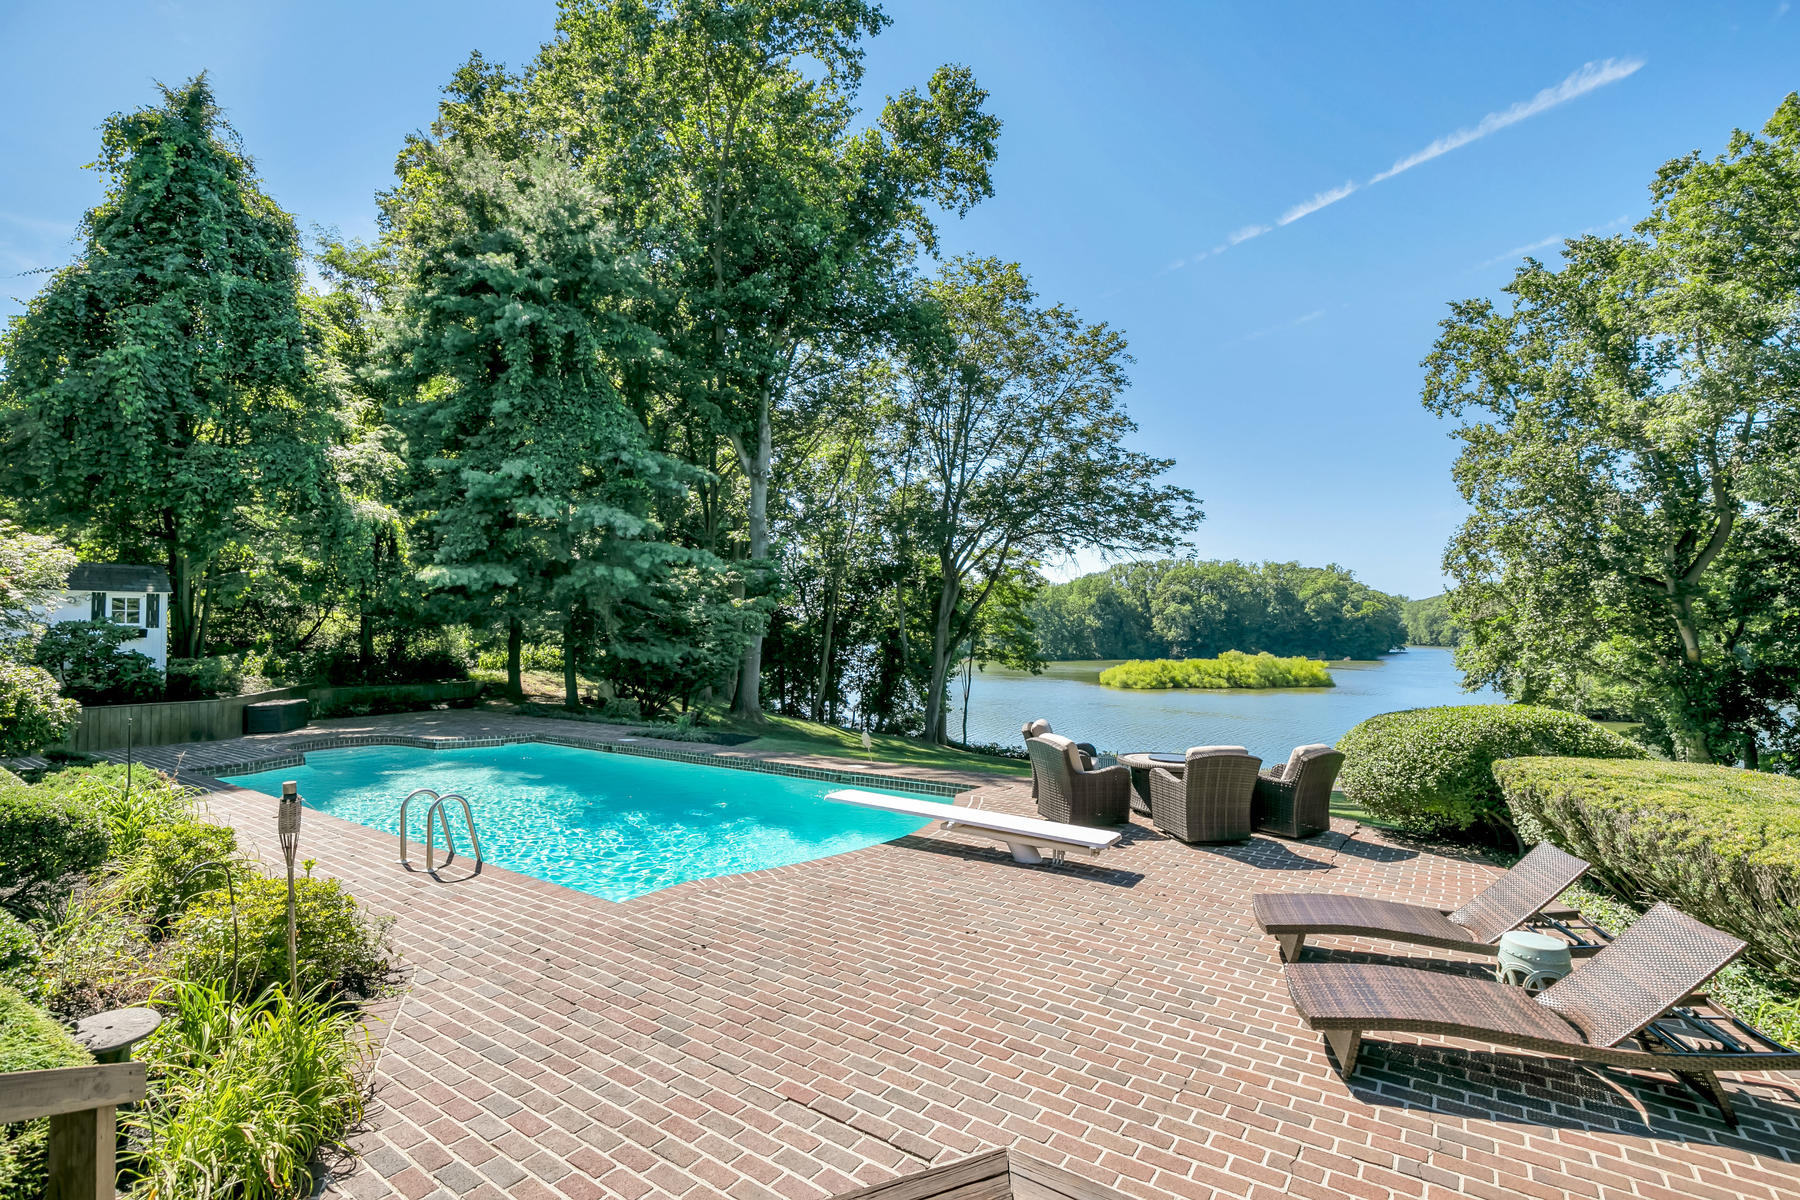 Maison unifamiliale pour l Vente à Waterside Treasure 40 Horse Shoe Court, Colts Neck, New Jersey 07722 États-Unis